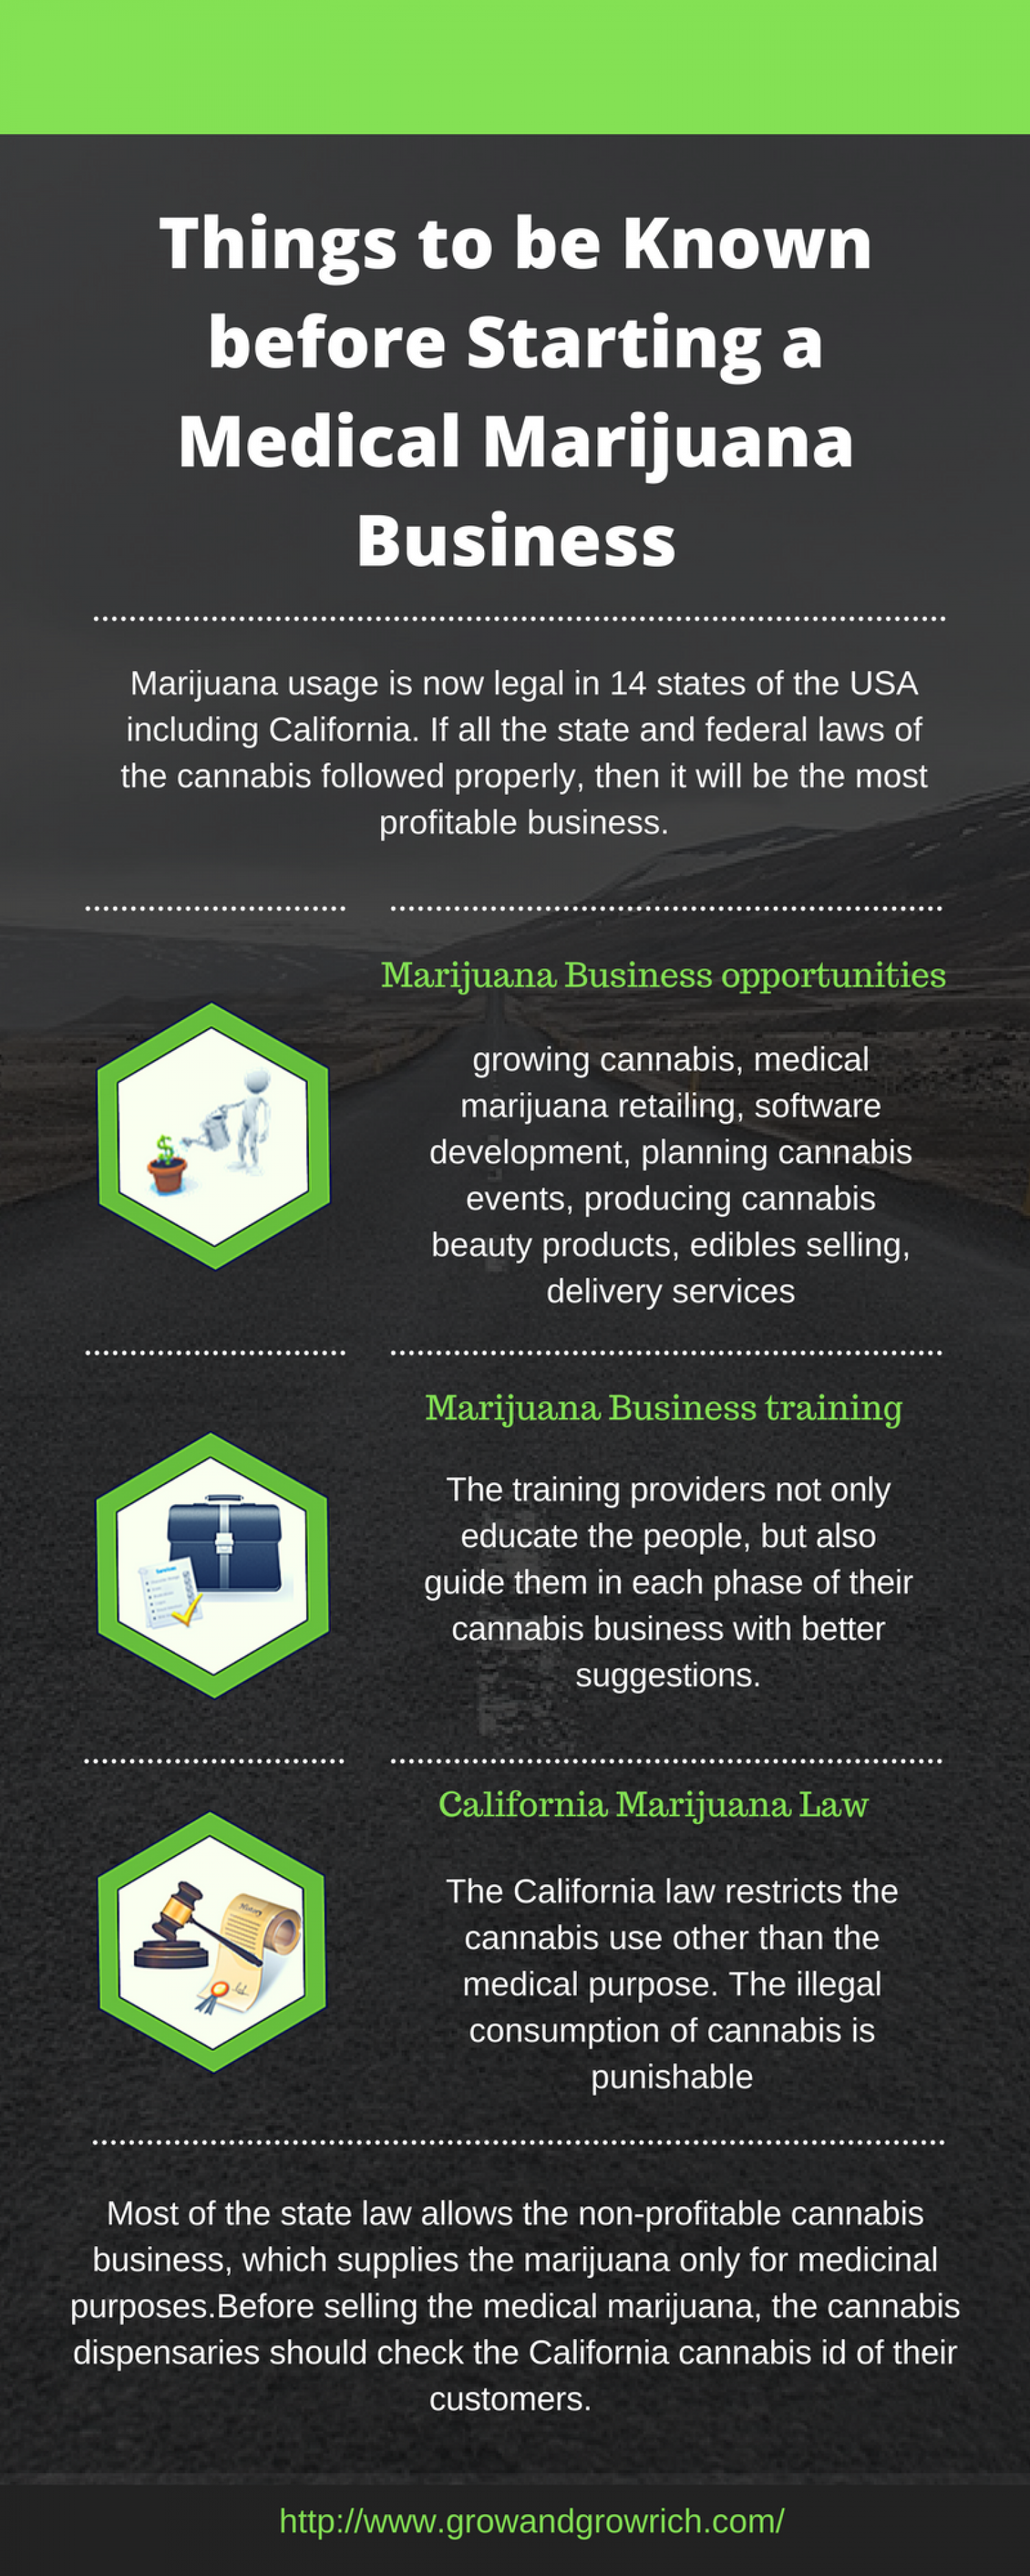 Things to be Known before Starting a Medical Marijuana Business